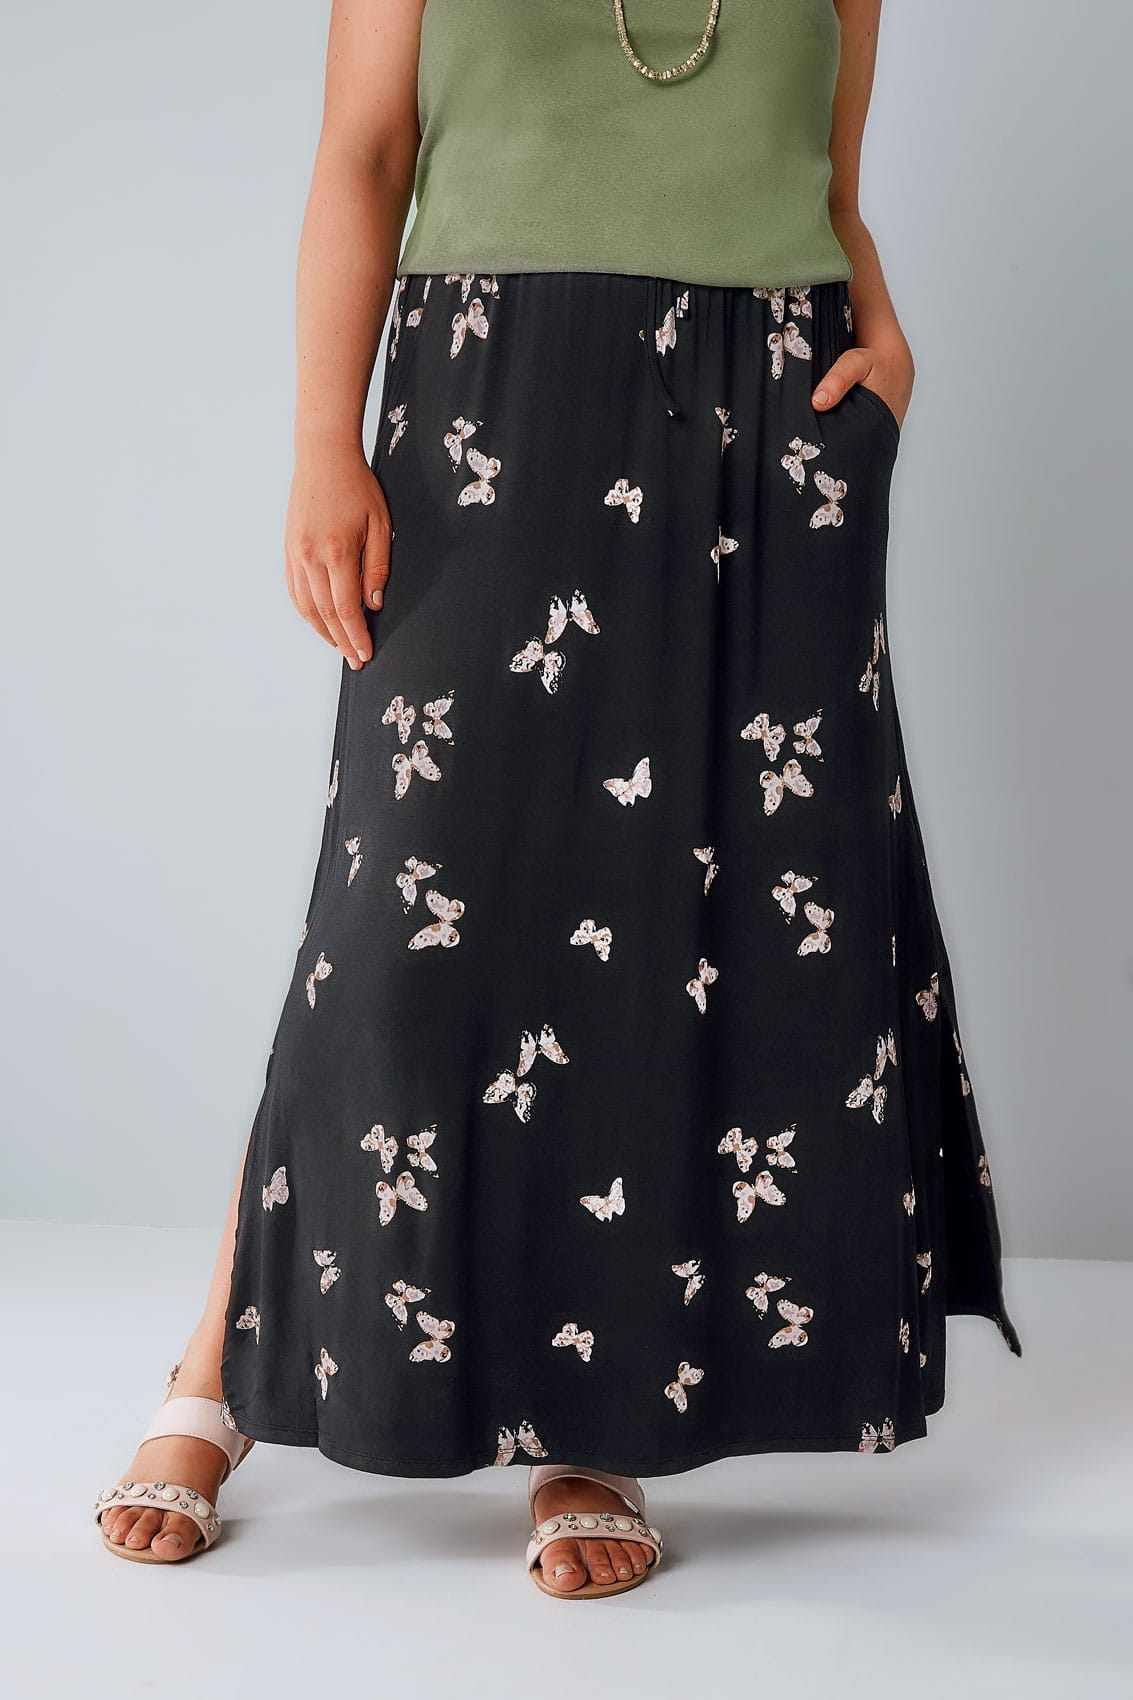 Black Pull-On Pencil Skirt - Floral is rated out of 5 by Rated 5 out of 5 by NY Minute from Classy Outfit Purchased w/ top for great looking outfit. Skirt below knee, had shortened to above.